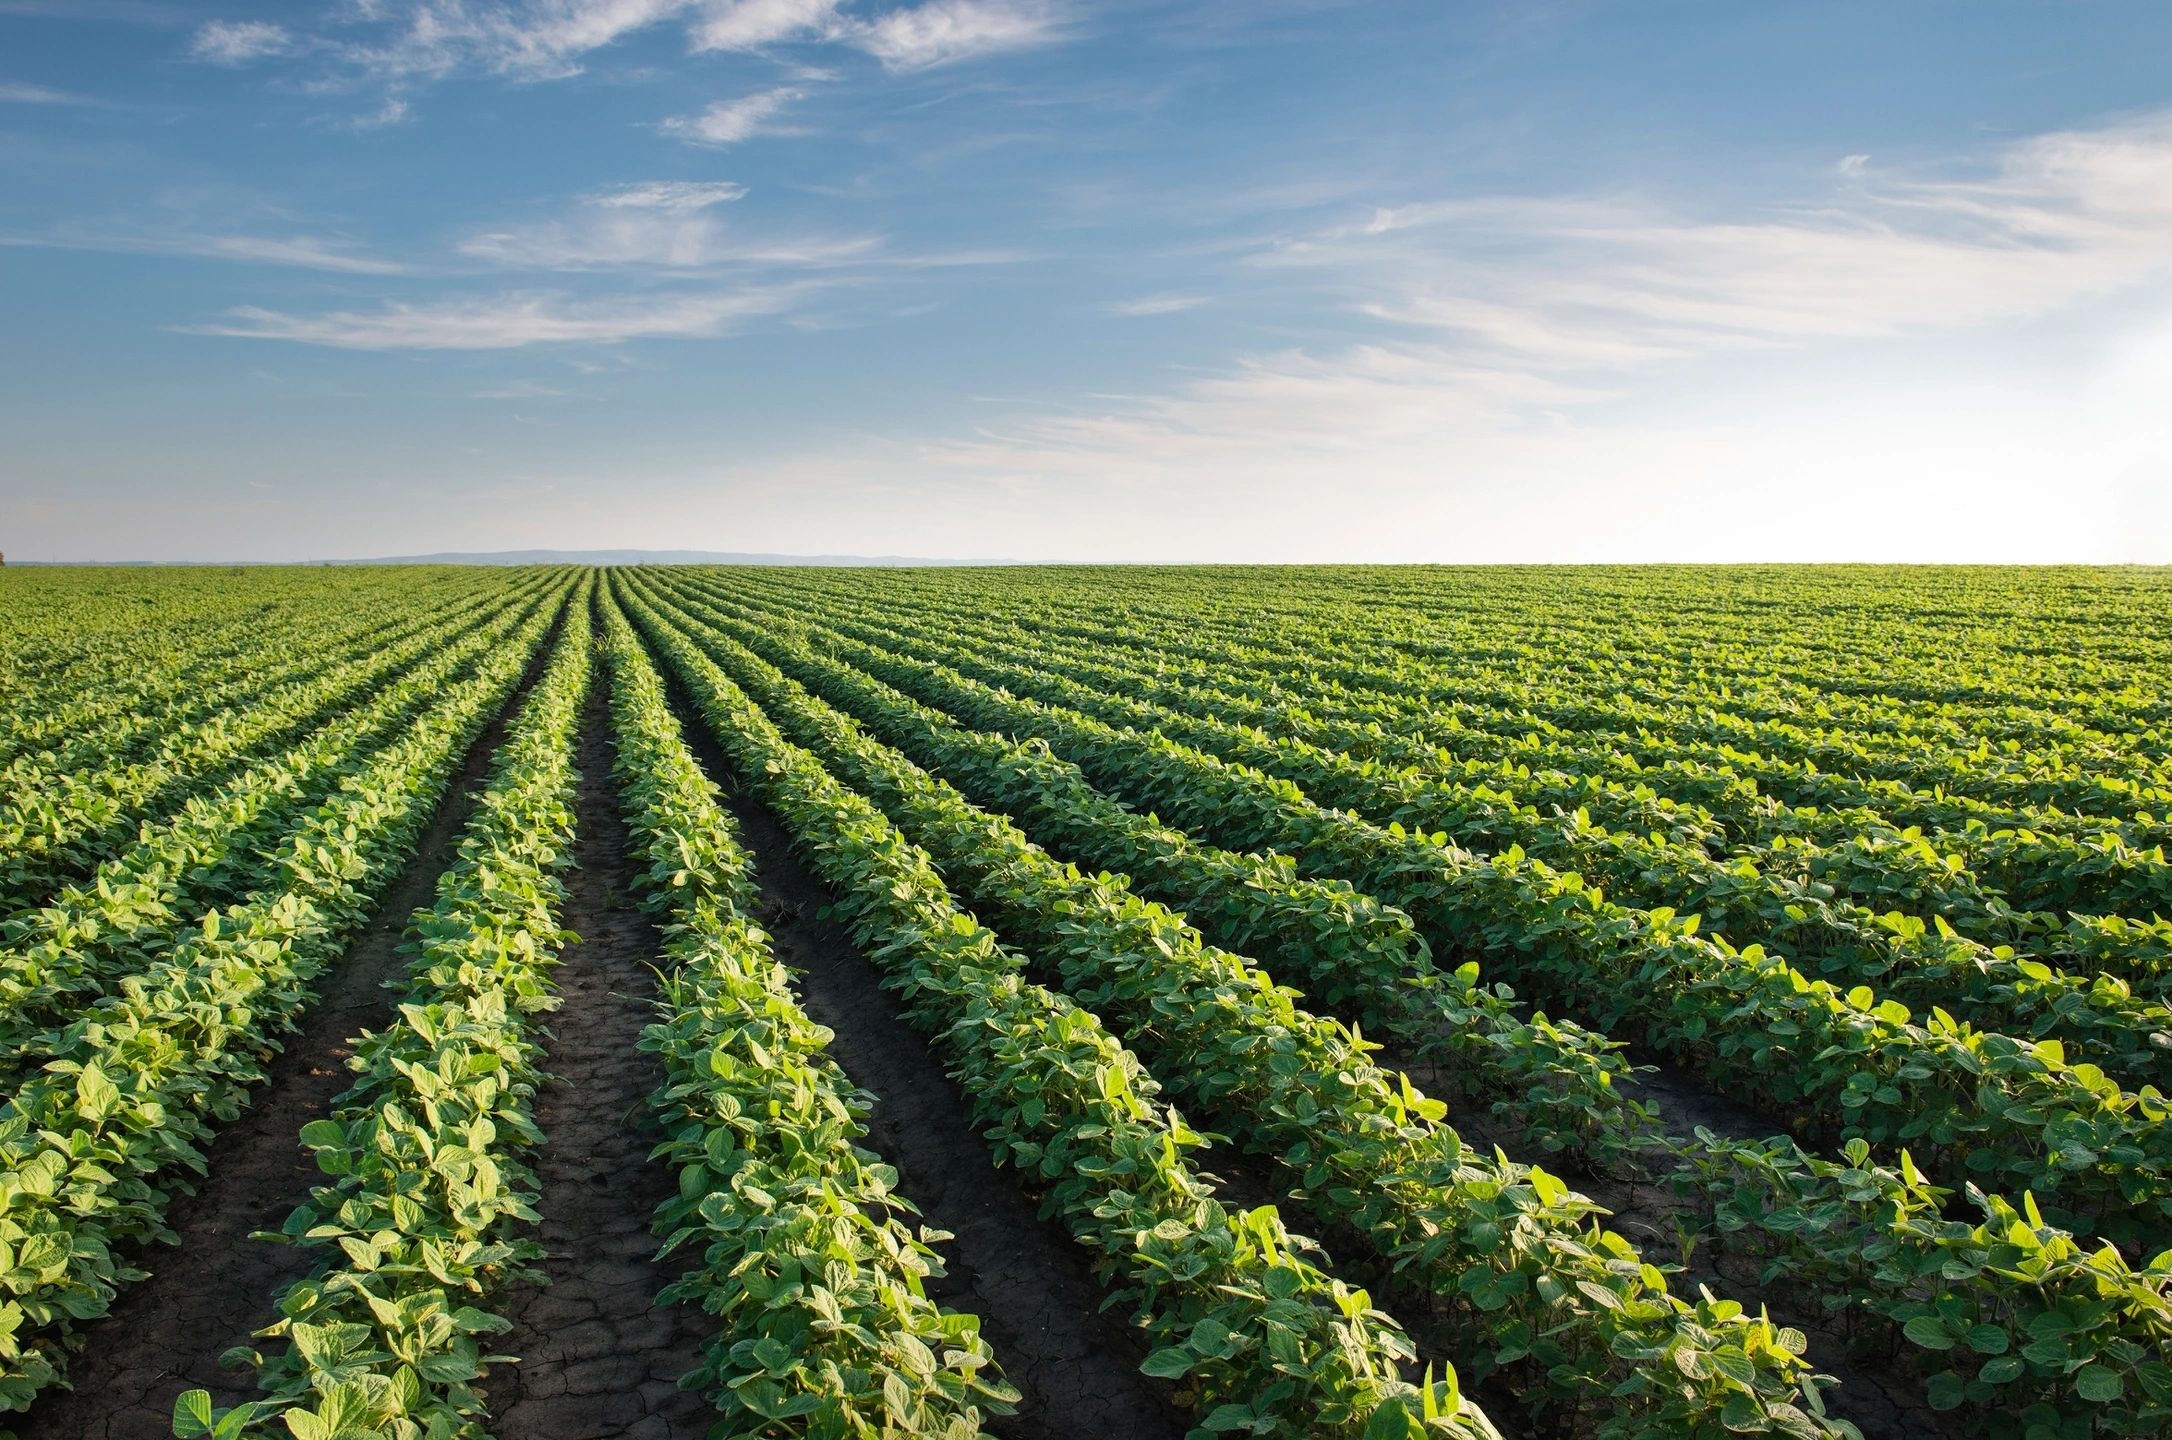 160 Acres M/L in Northern Benton County for Rent for the 2020 Crop Season